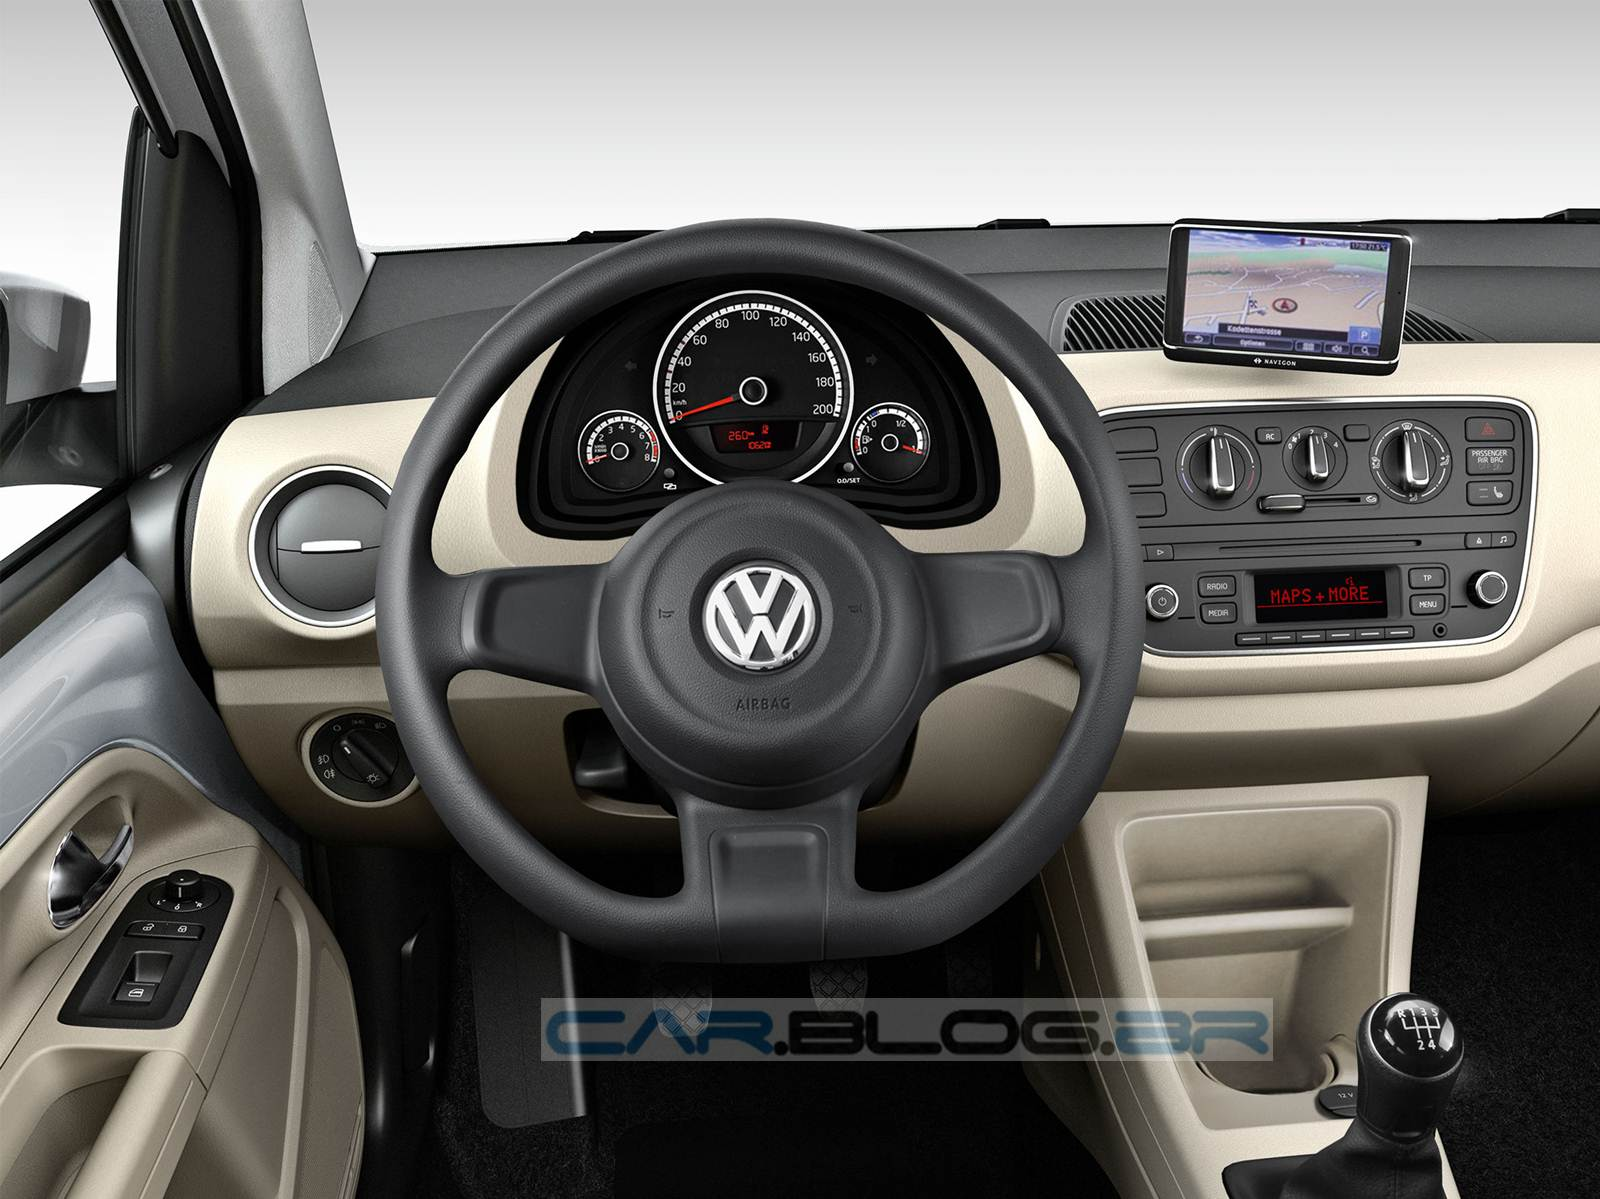 Volkswagen Up! -0 versão Move-Up - interior